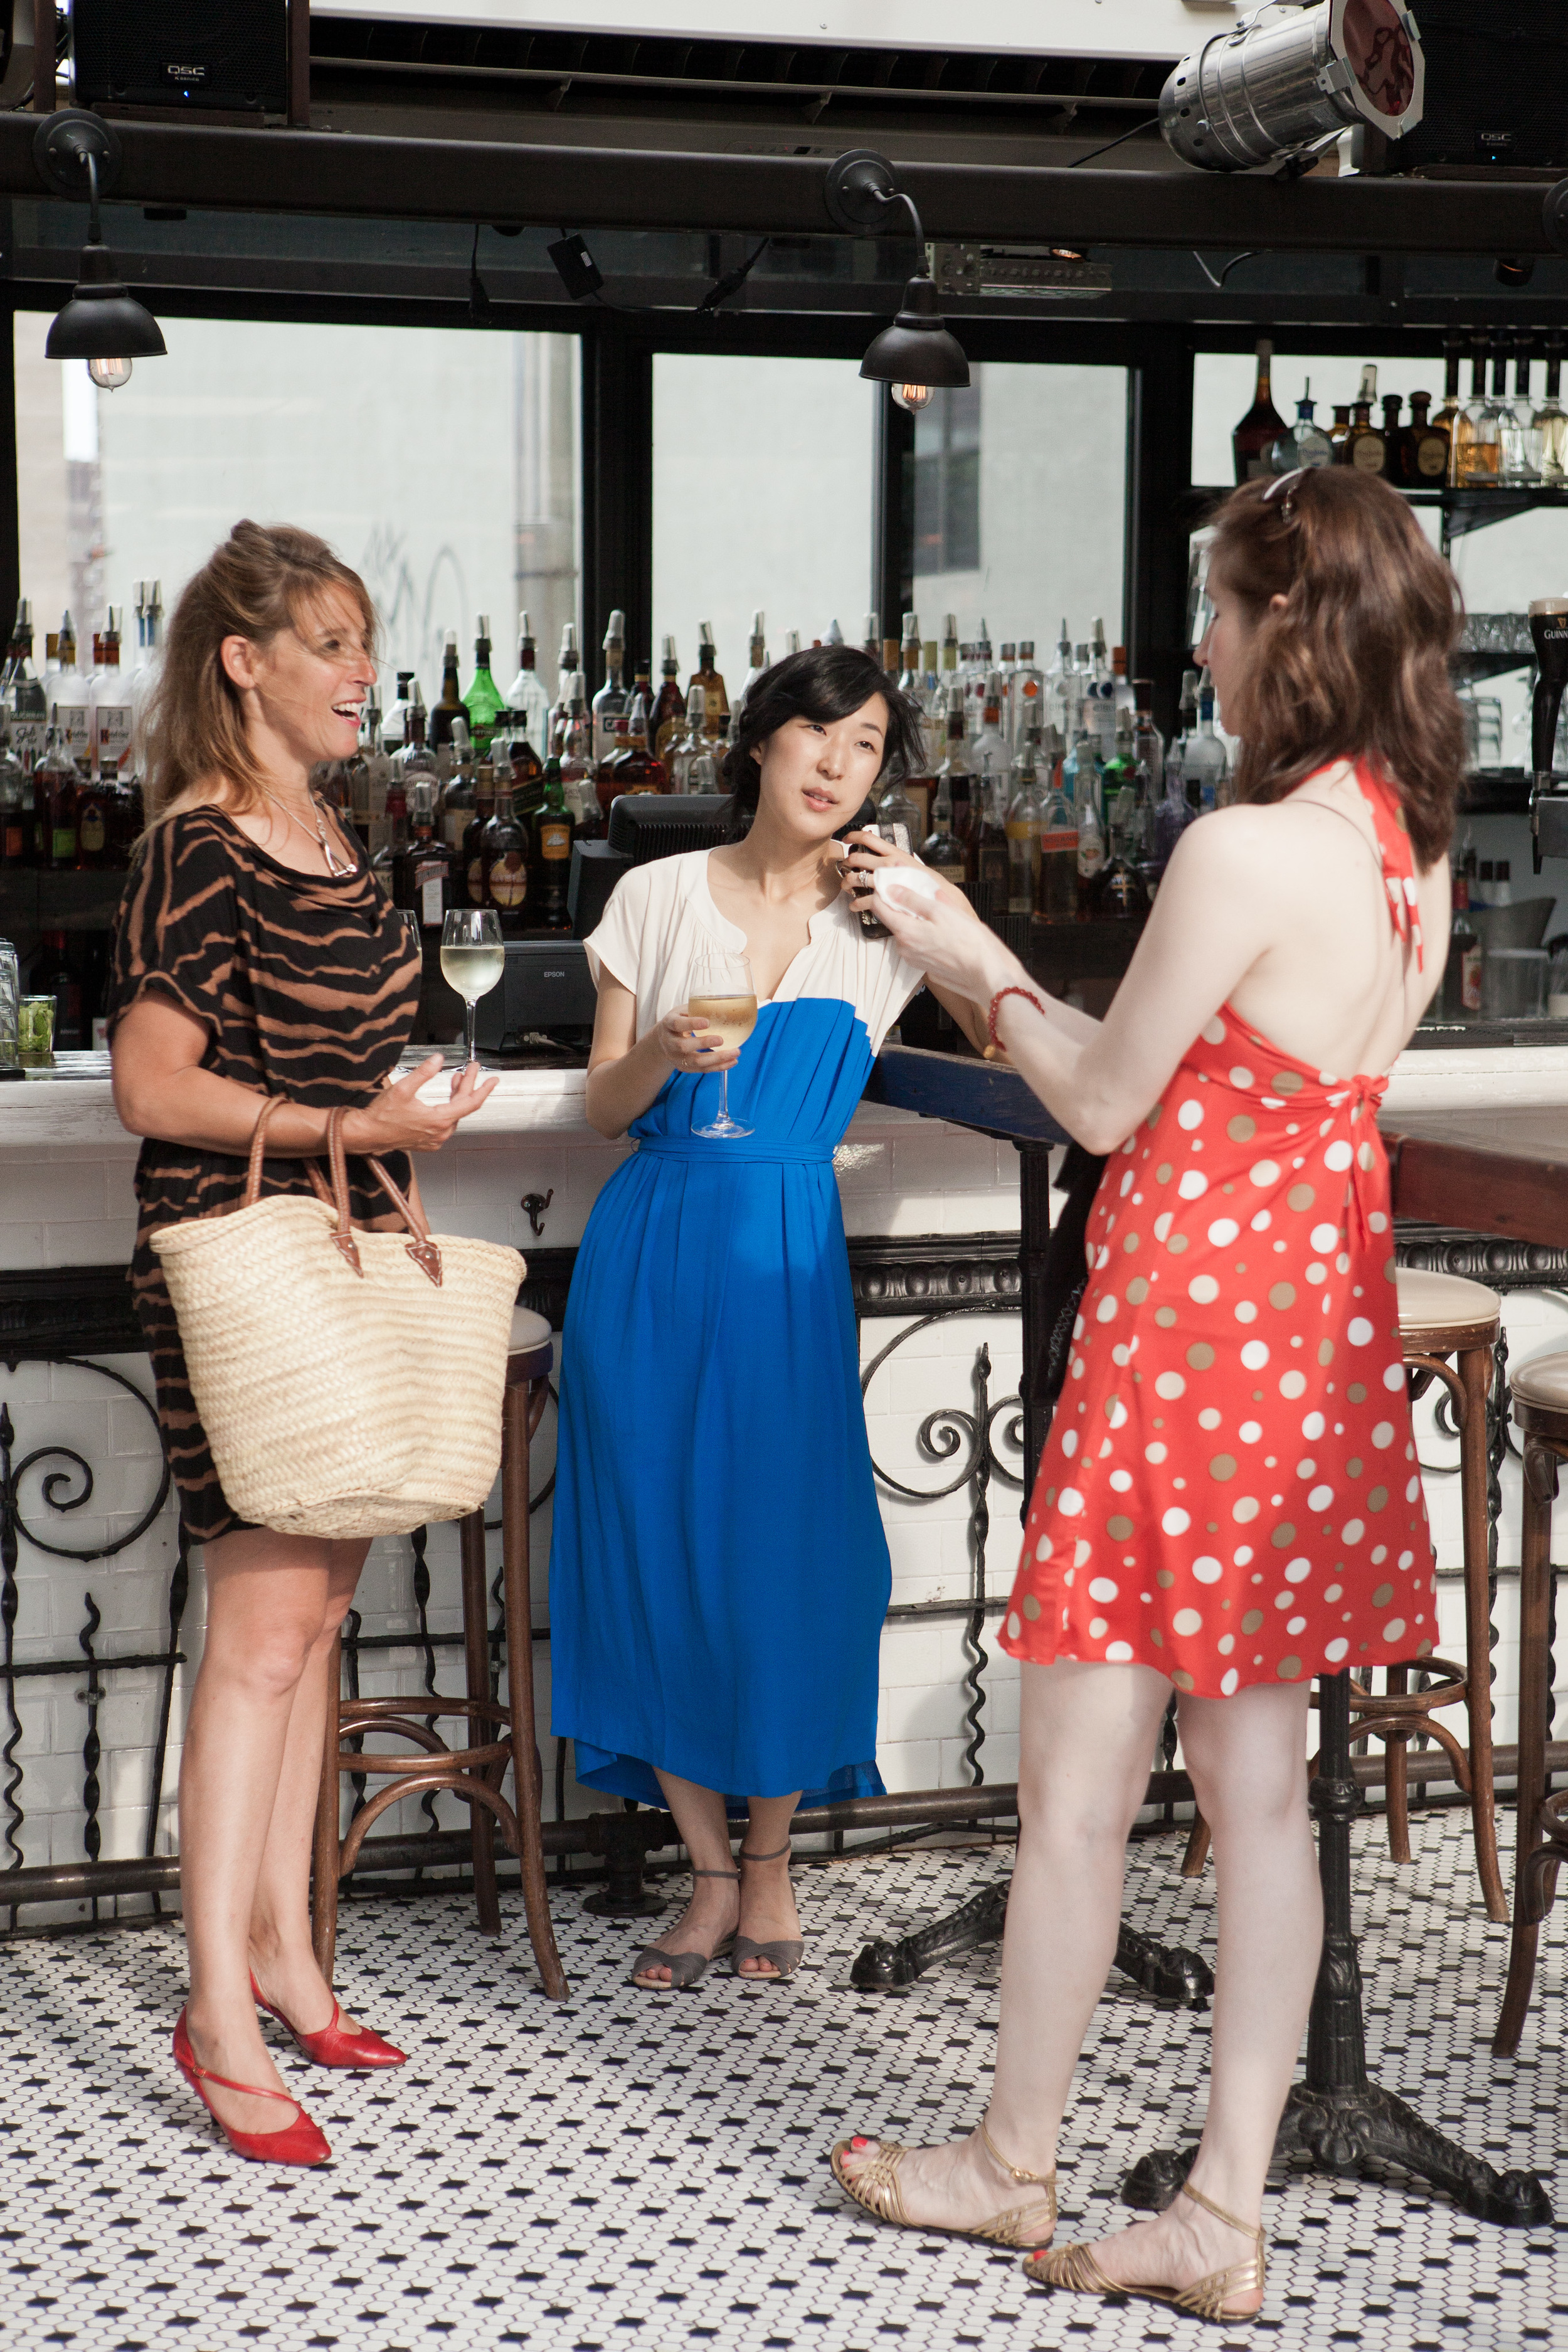 20130626_entwined_068.jpg